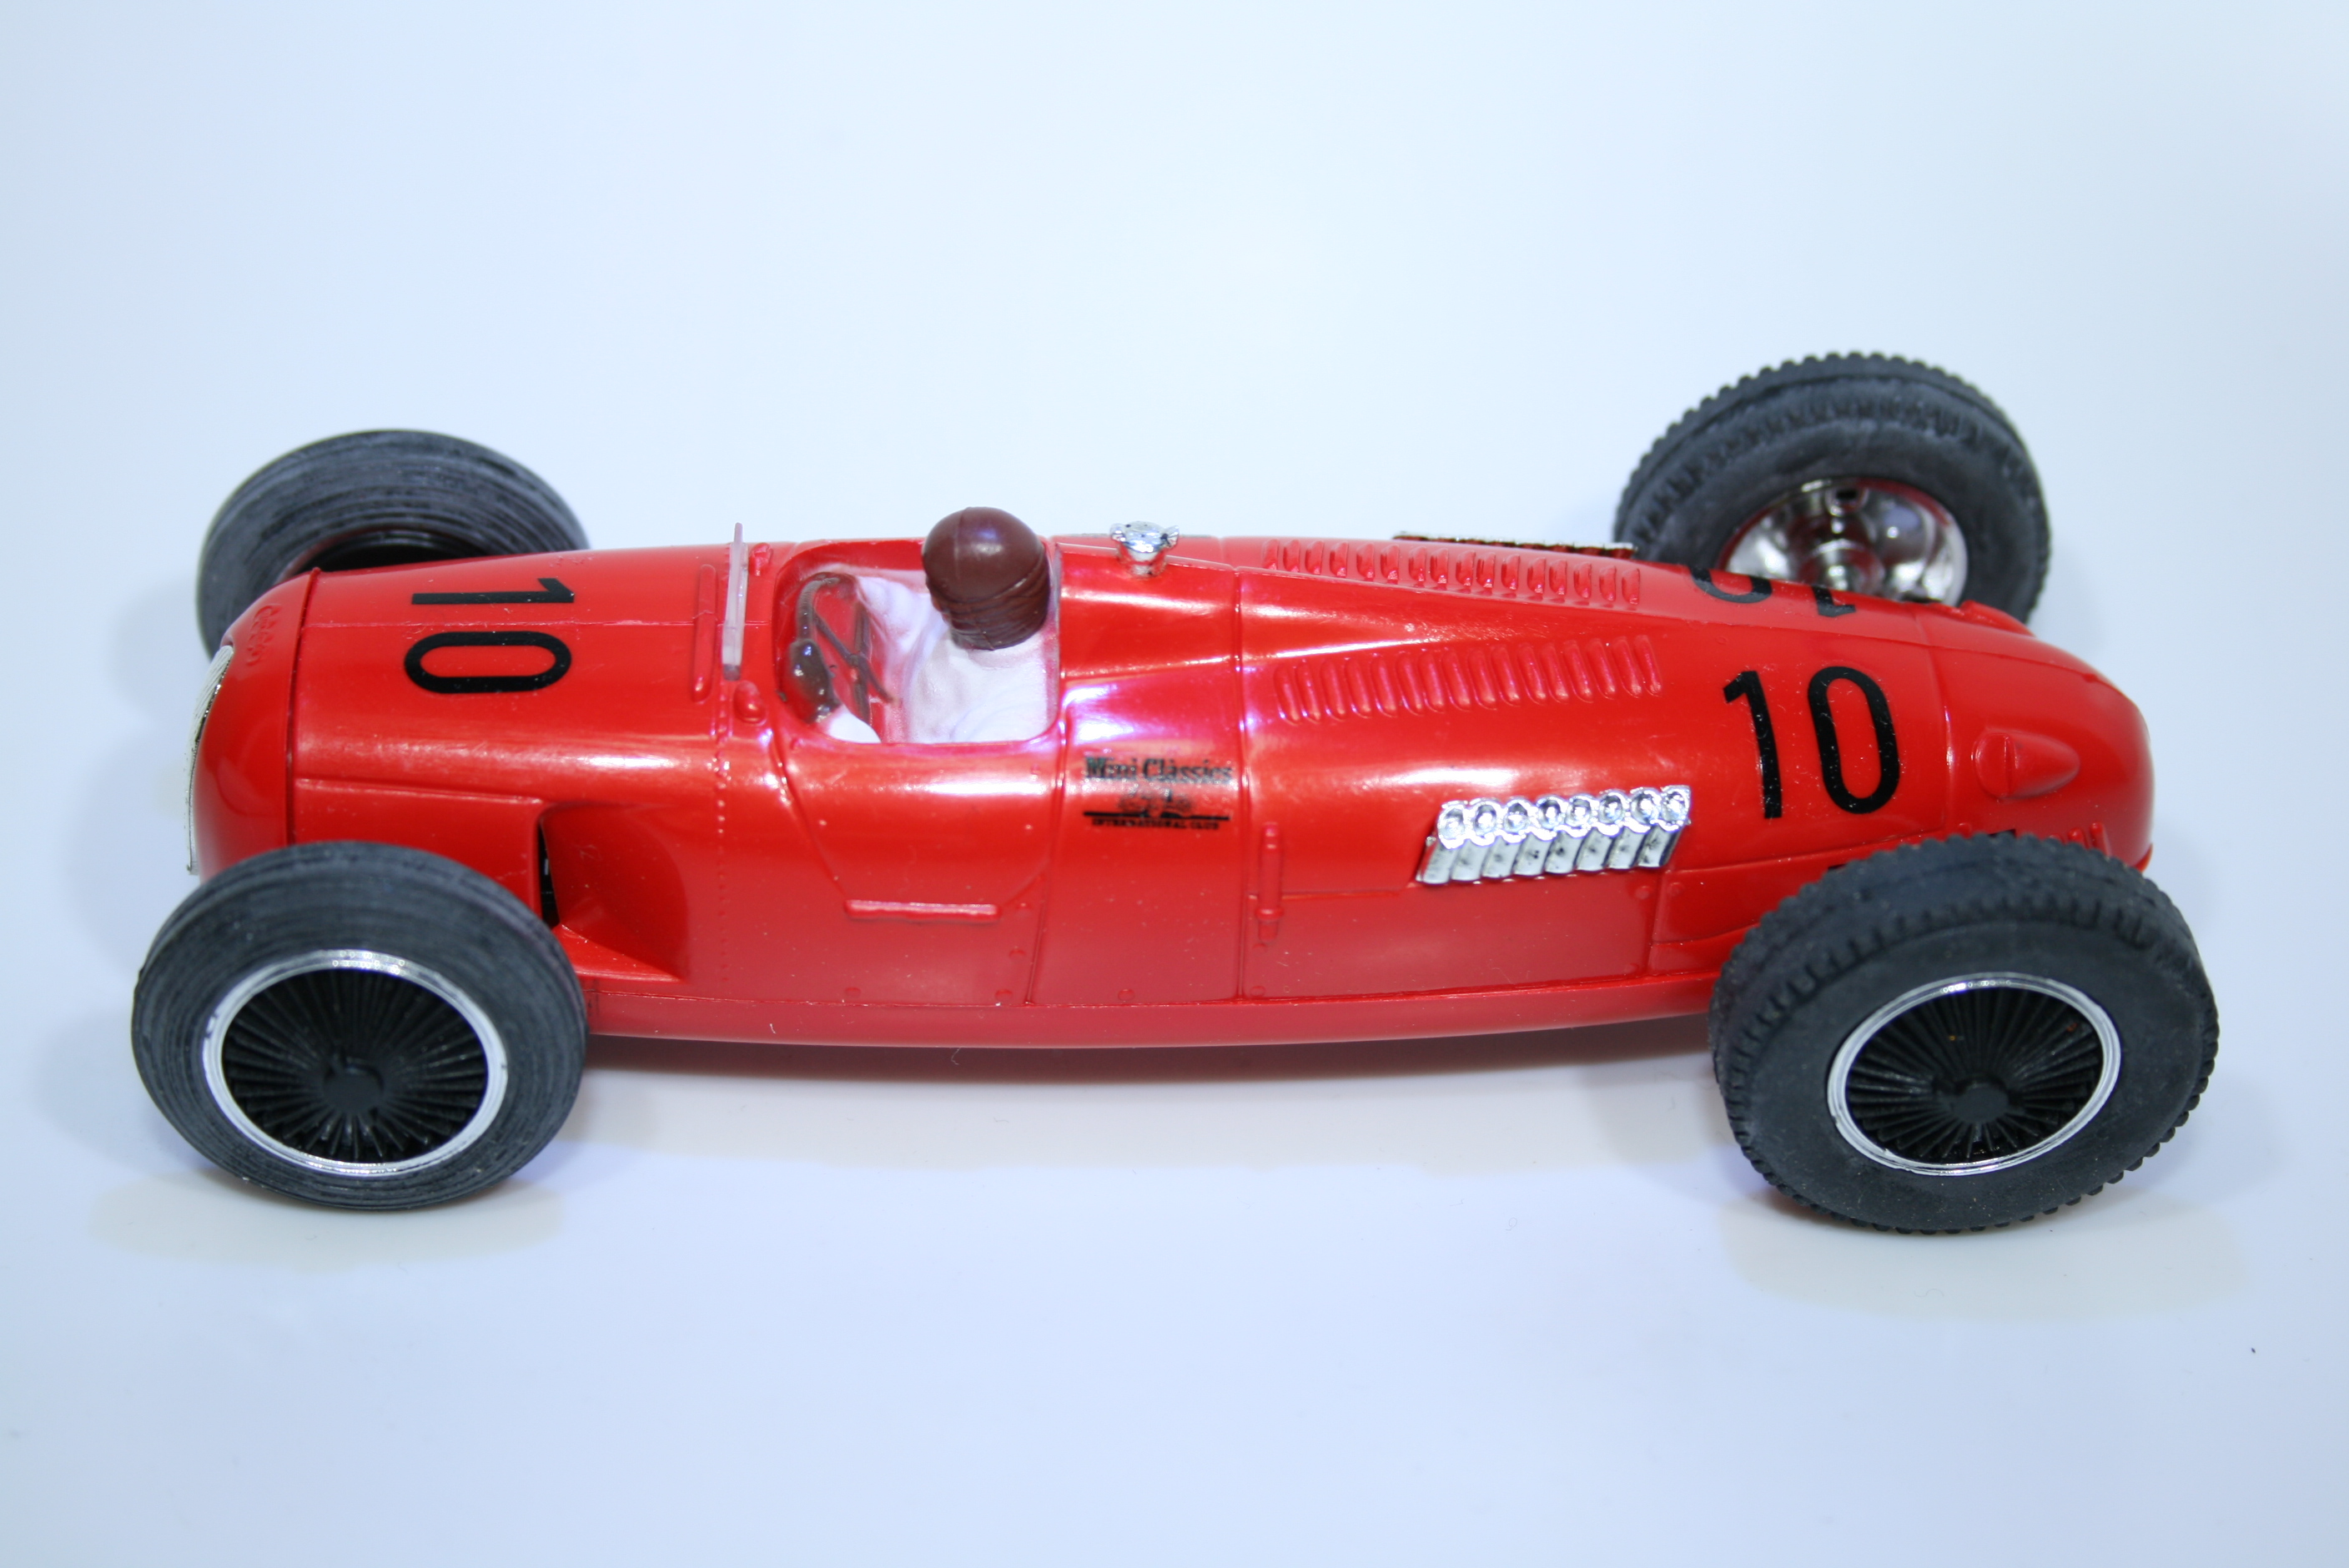 1000 Auto Union Type C 1936 B Rosemeyer Pink Kar MC002 1999 Boxed